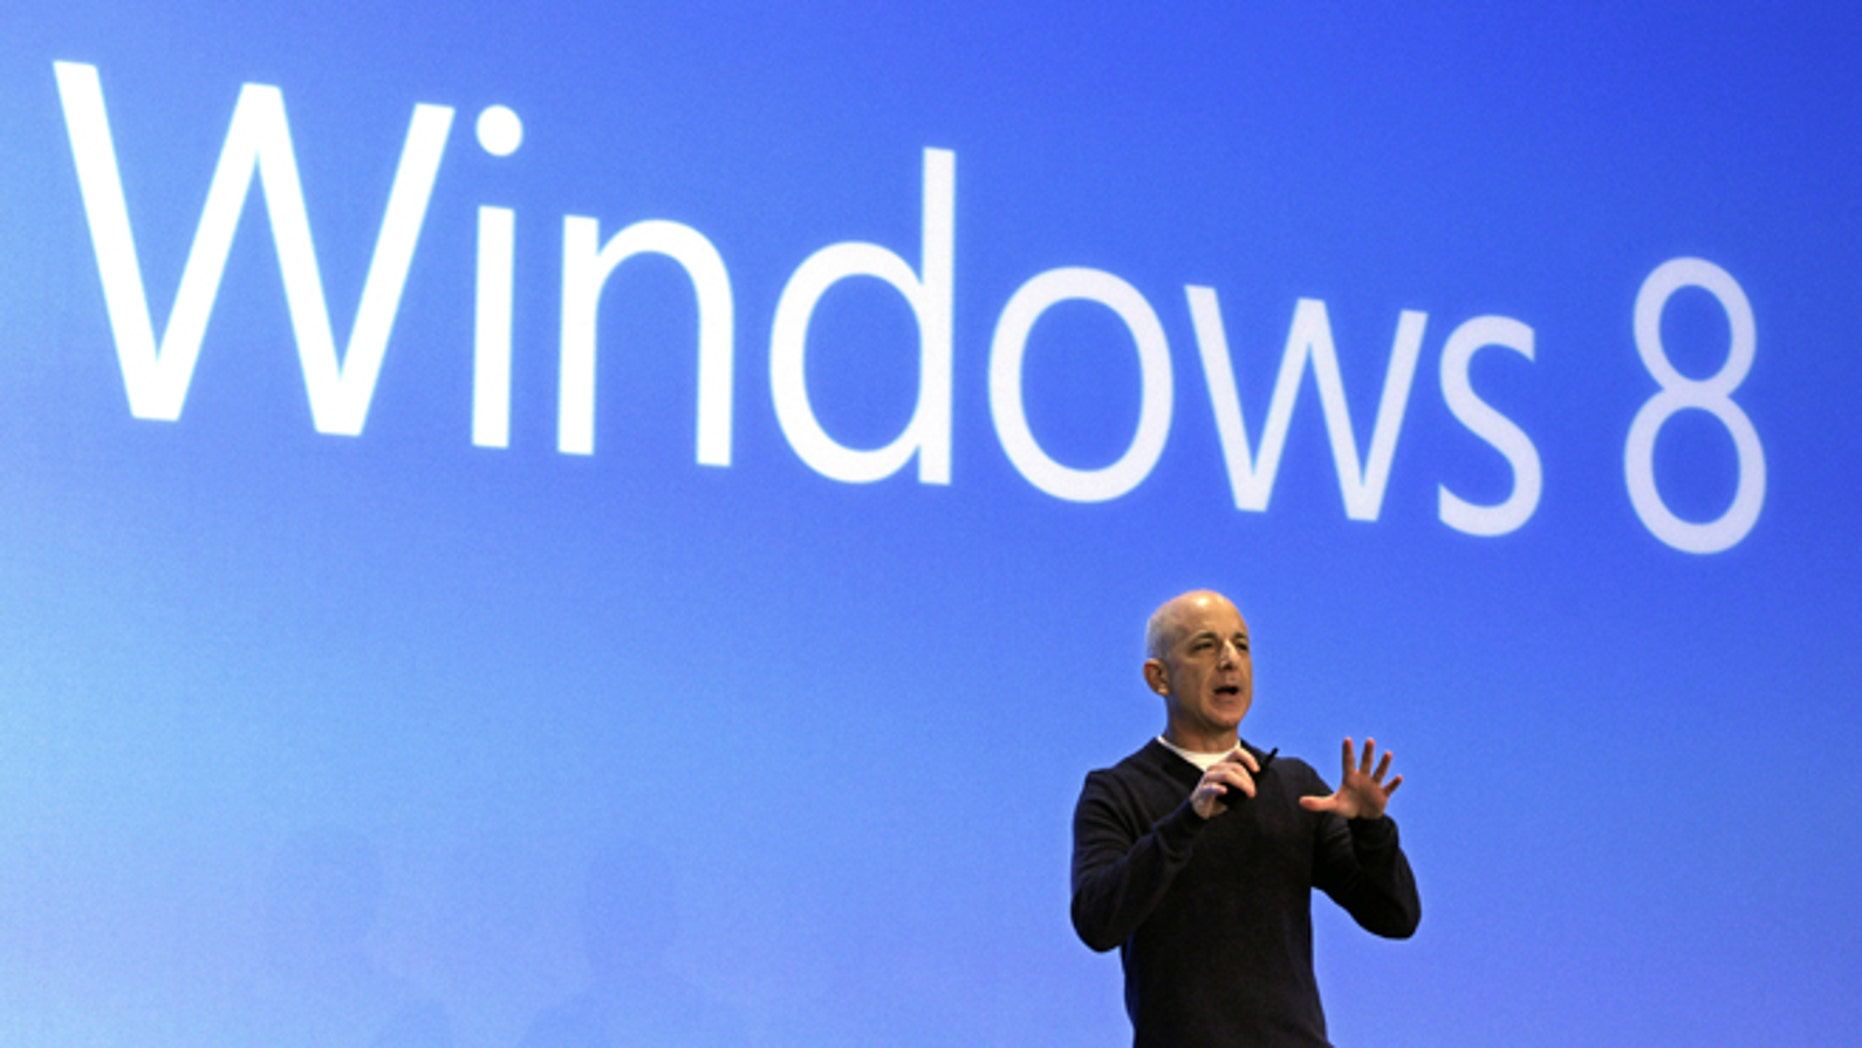 Oct. 25, 2012: Steven Sinofsky, then-president of the Microsoft Windows group, delivers his presentation at the launch of Microsoft Windows 8, in New York.